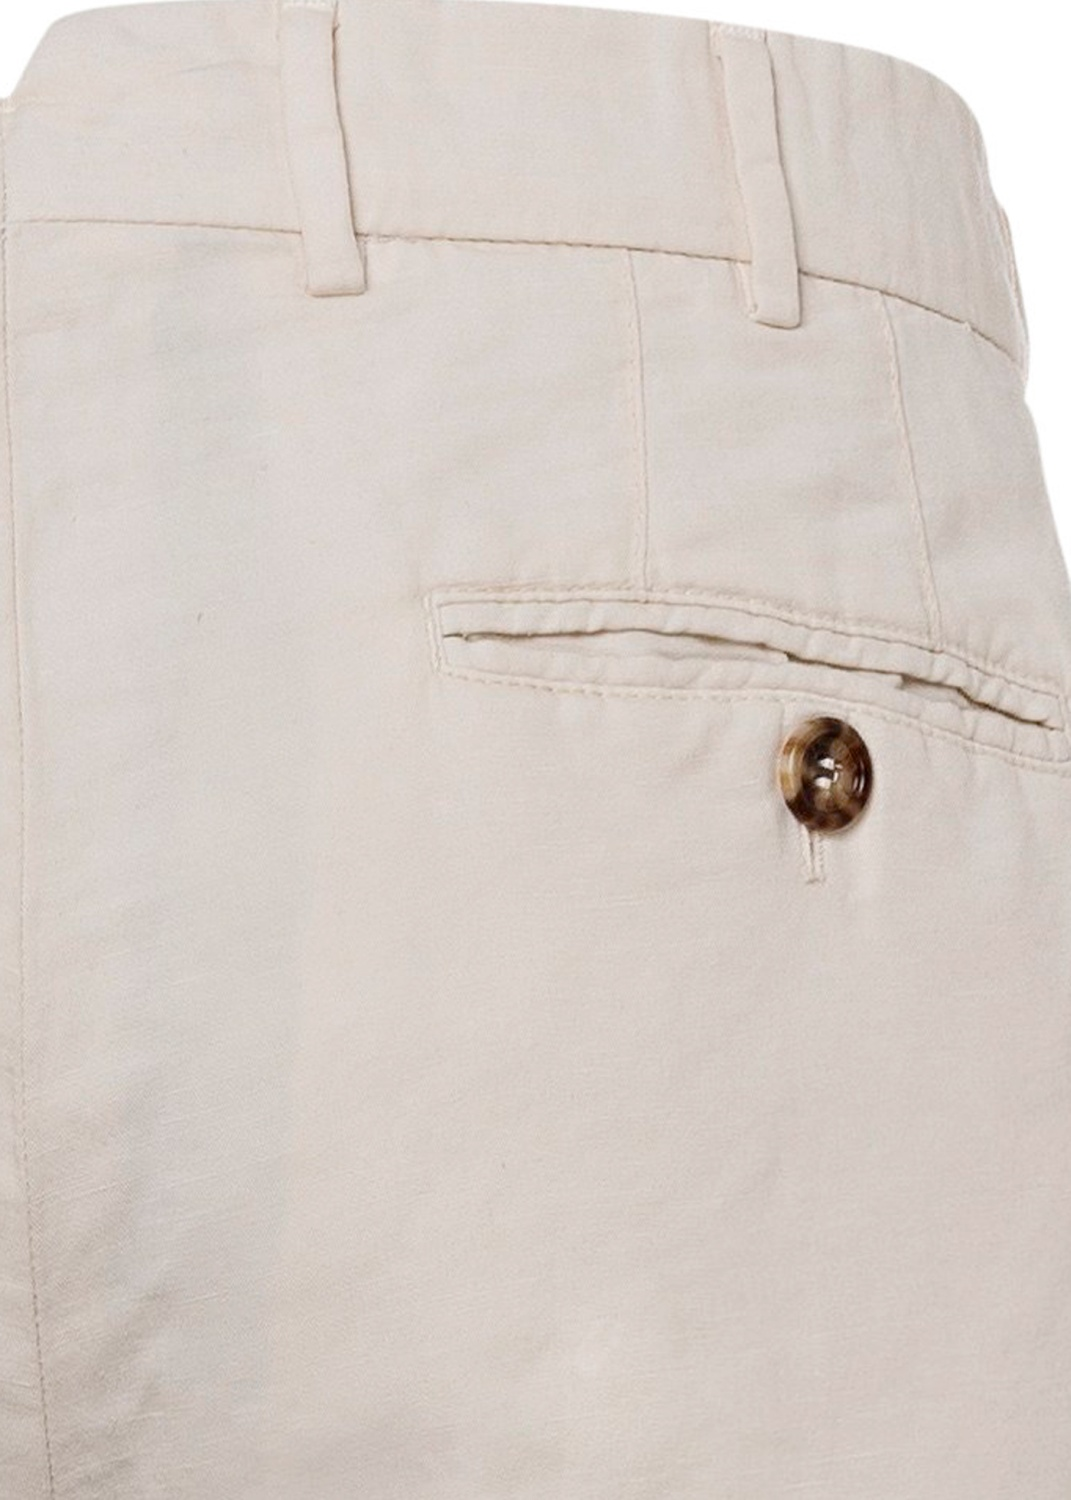 Cotton Linen Classic Chino image number 3